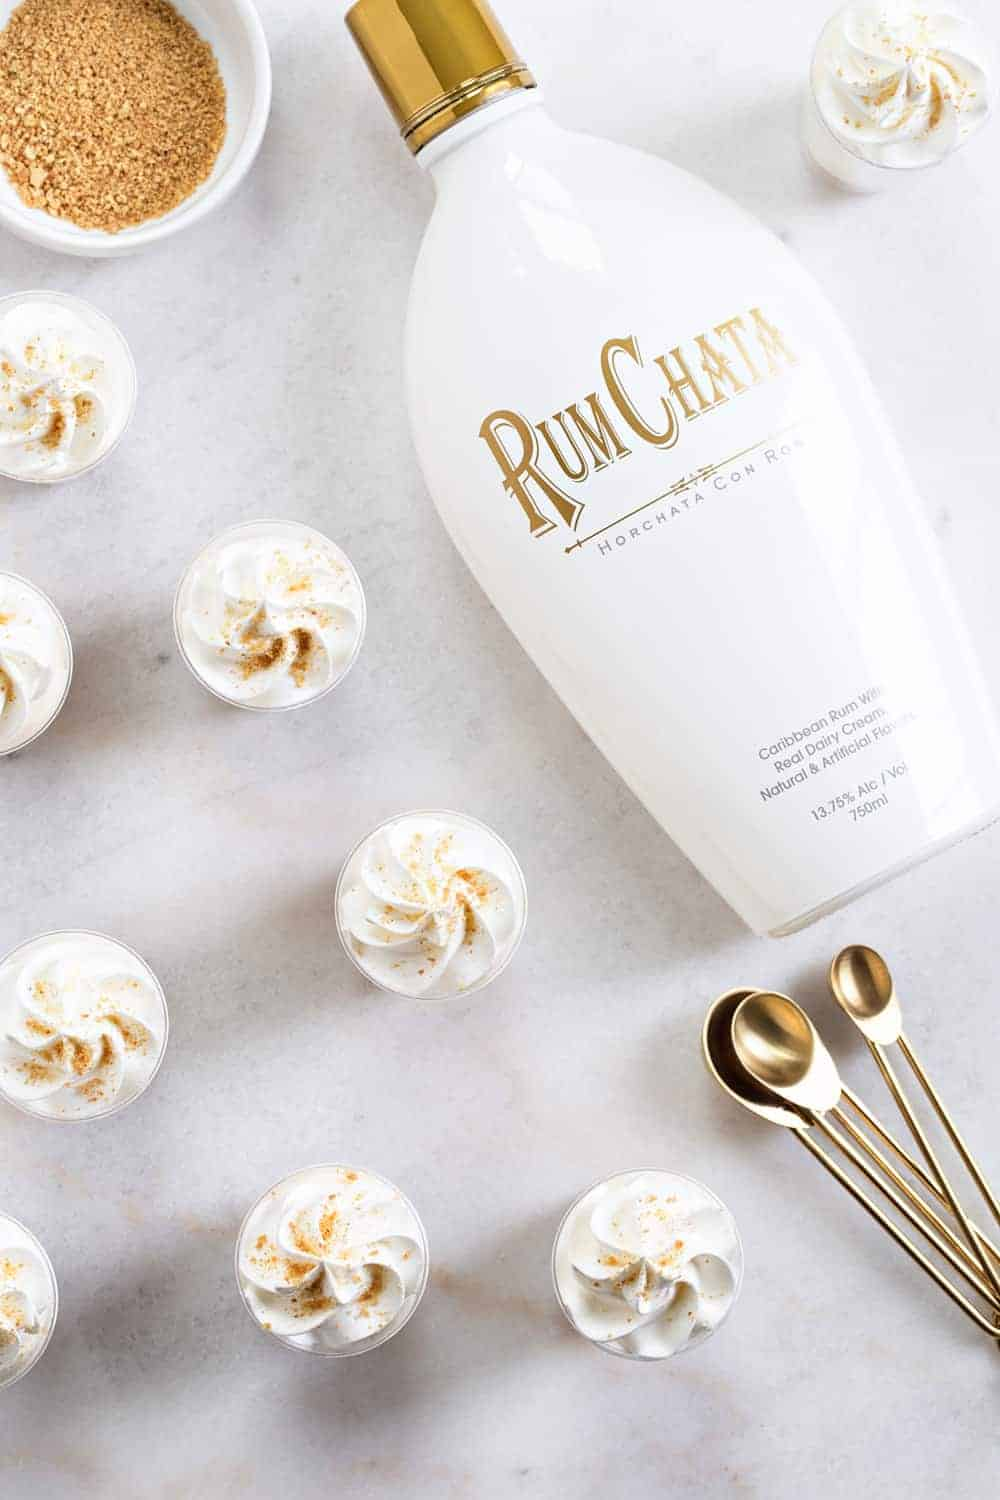 RumChata Cheesecake Pudding Shots come together with 5 simple ingredients. Simple and delicious!